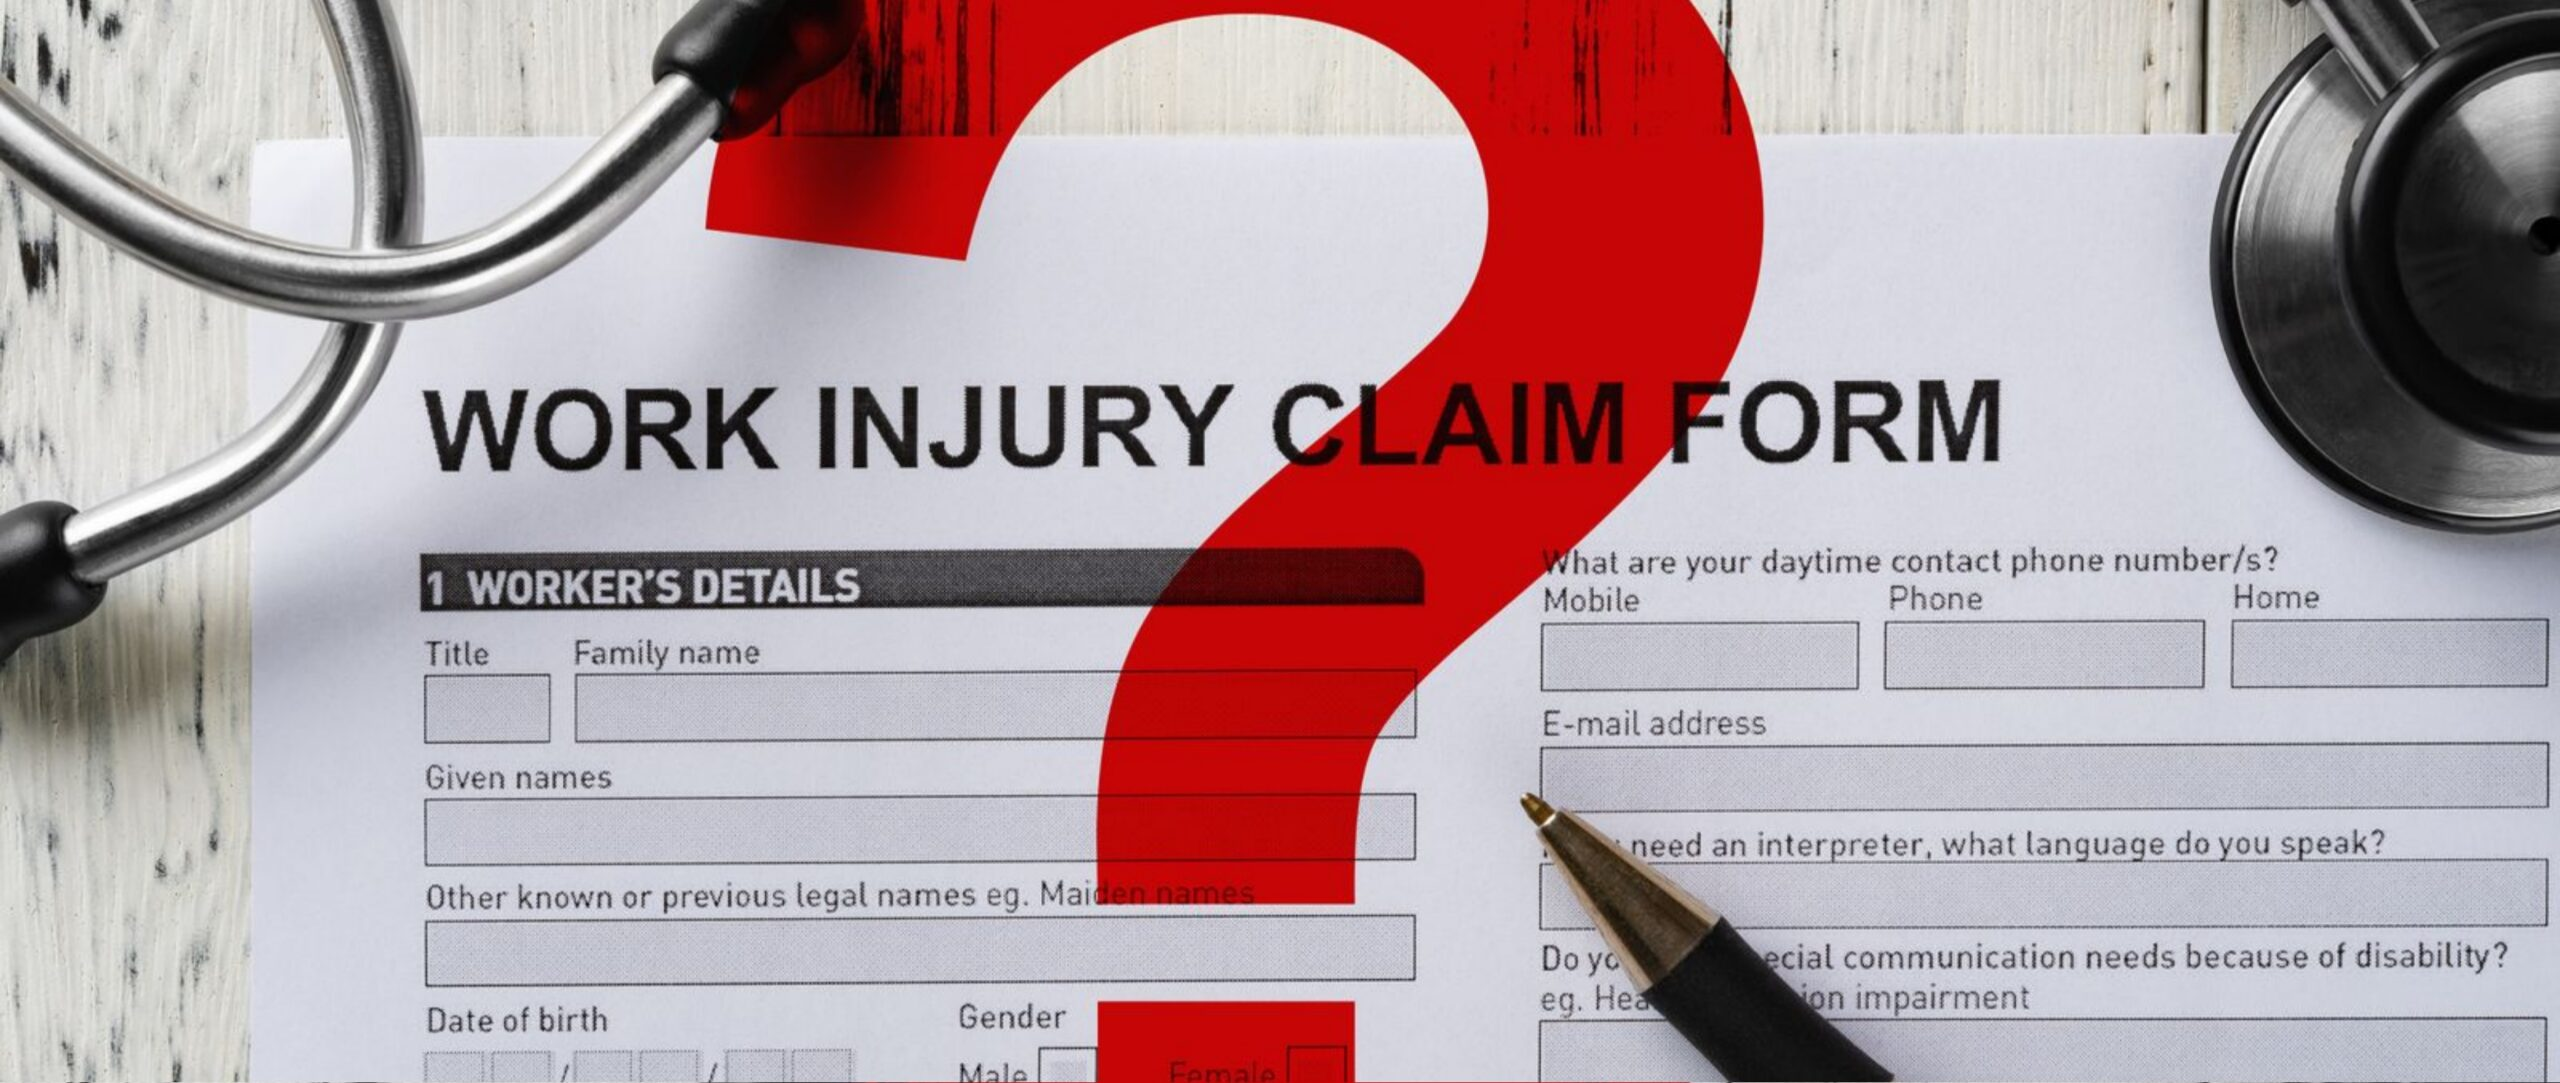 Questions on Work Injury Claim Form